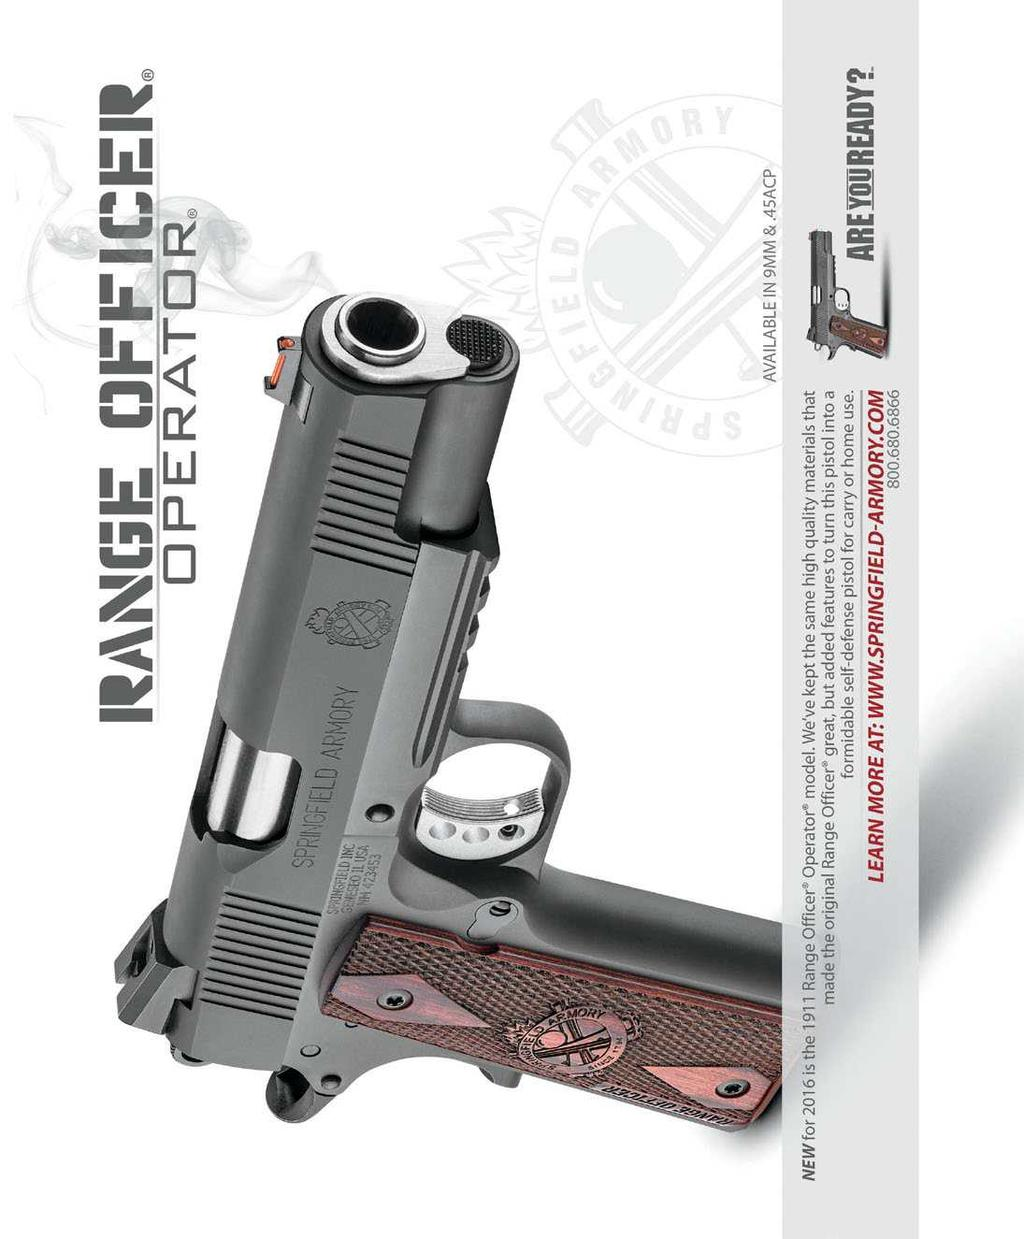 PAGE 2 FIREARMS NEWS - firearmsnews com VOLUME 70 - ISSUE 14 - PDF